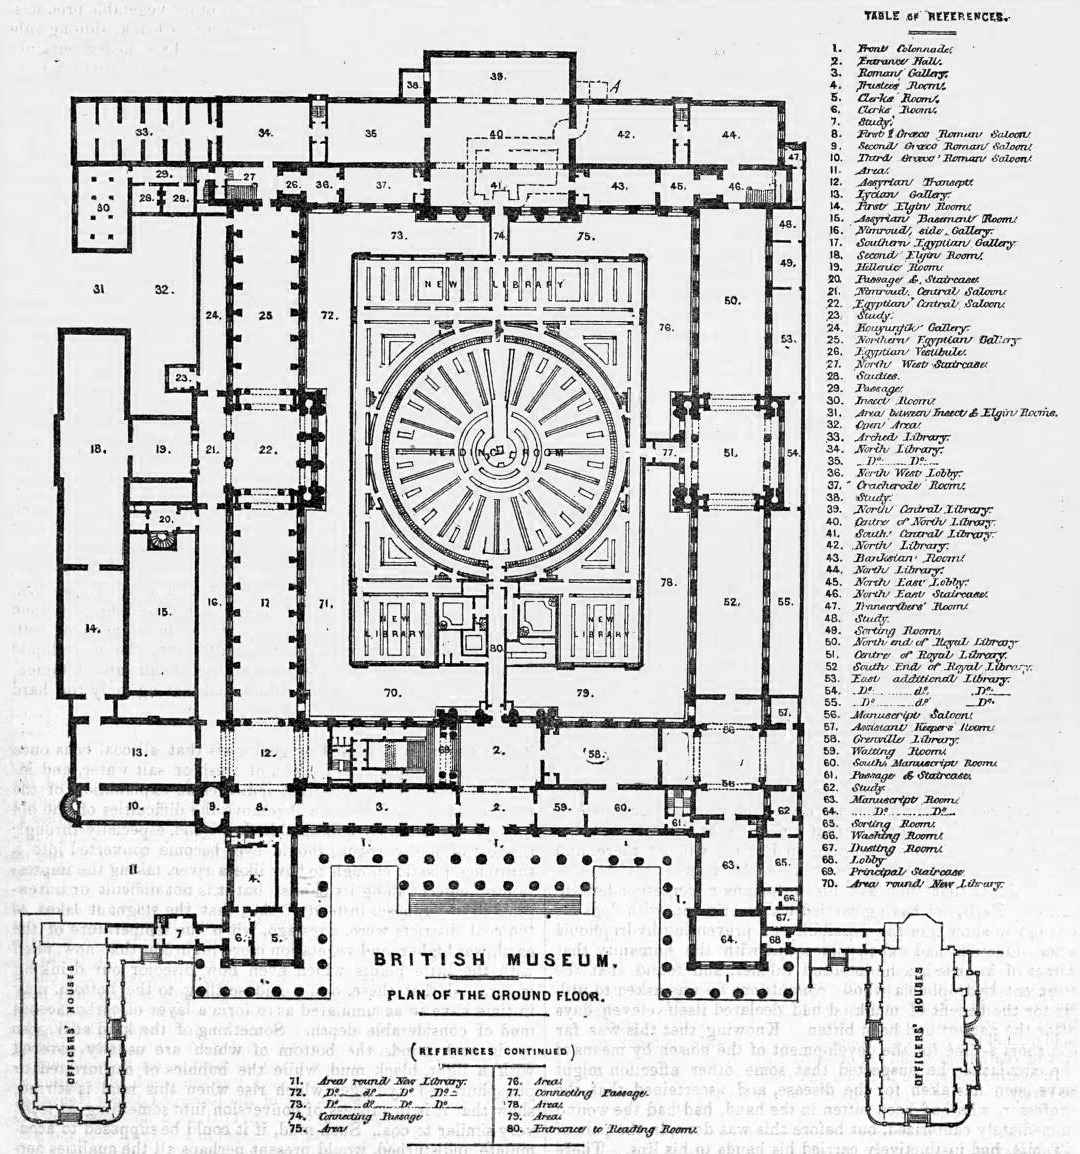 Plan of the ground floor of the British Museum, London